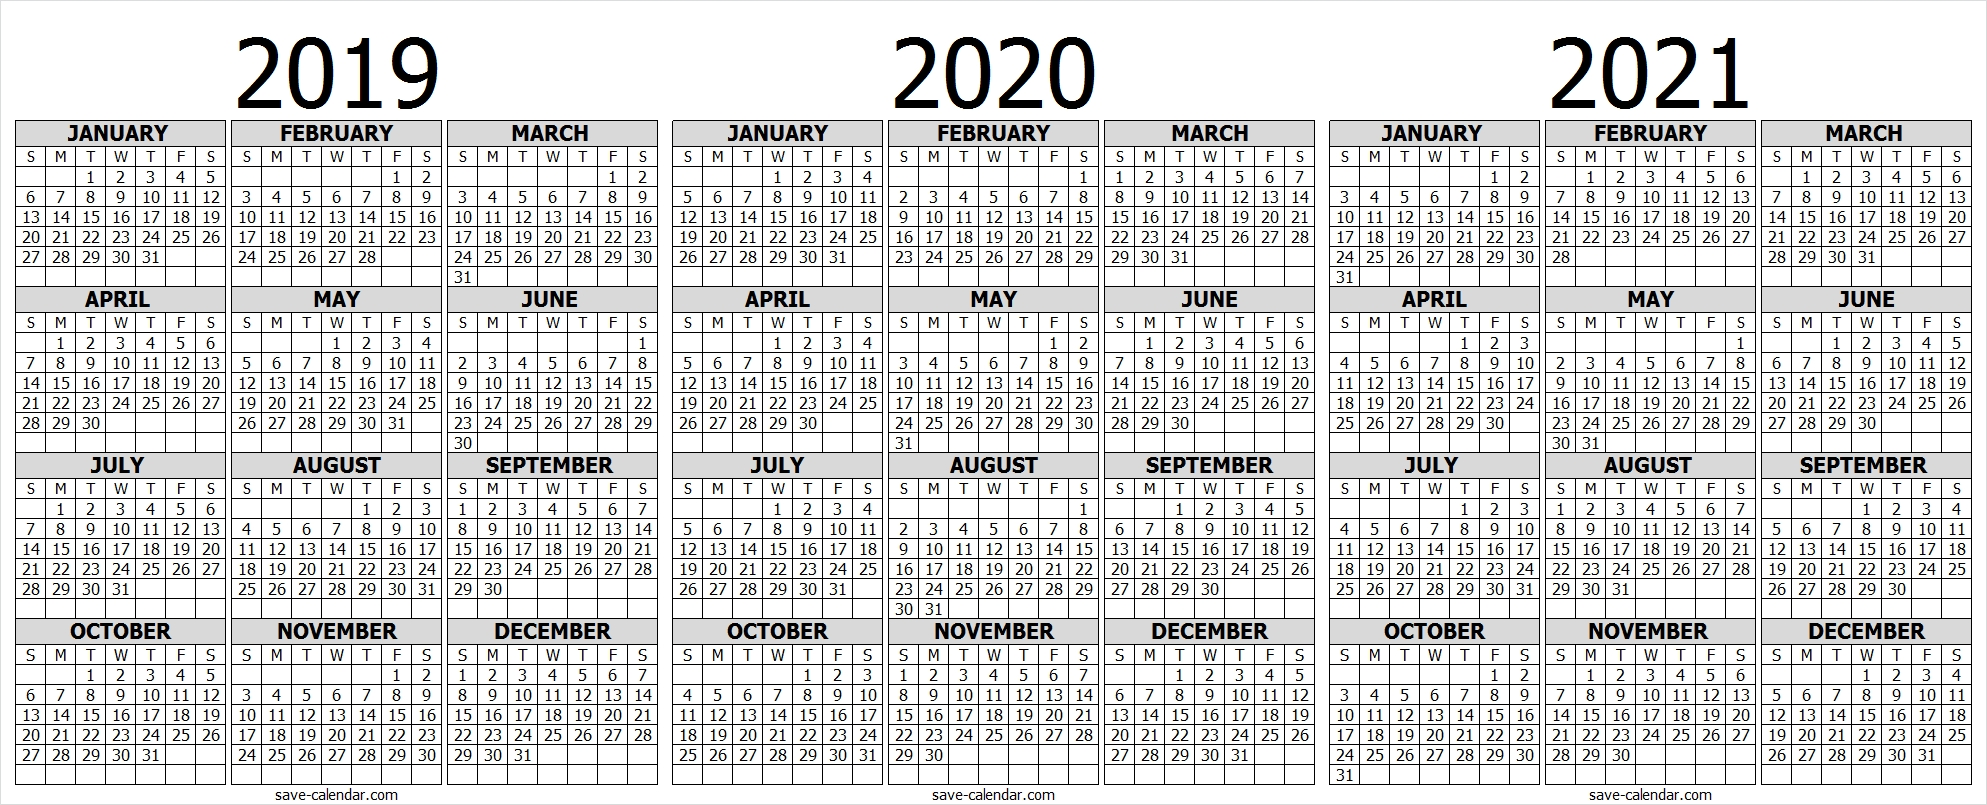 2019 2020 2021 Calendar To Print | Print Calendar, 2021 with Printable Calendar Or 2020 And 2021 Monday To Sunday